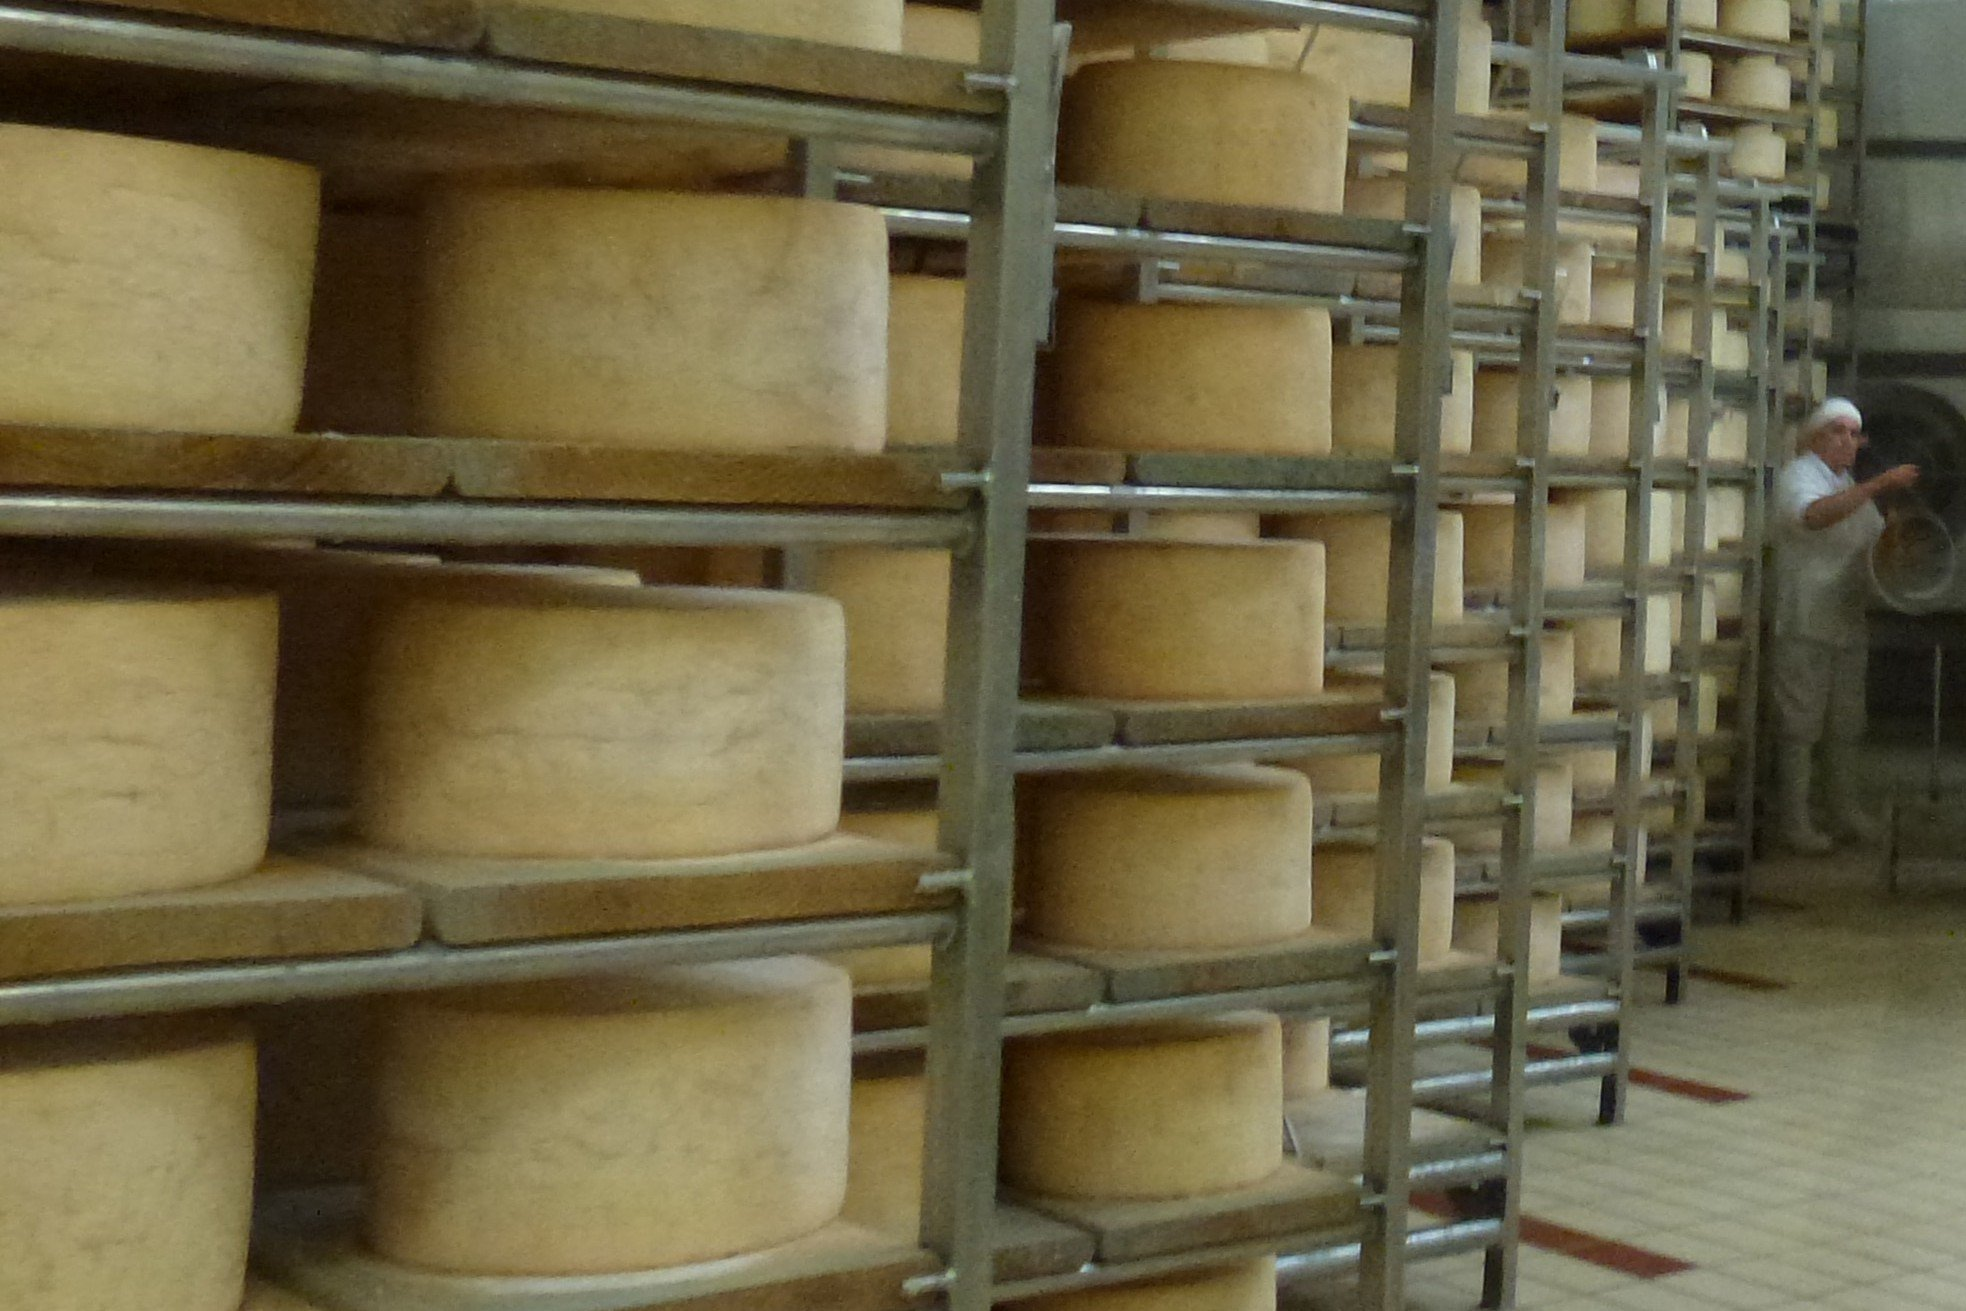 Download this weekly cleaning schedule for personal use only thank - The Traditional Practice Of Using Wood Boards For Cheese Aging Must Meet The Contemporary Practice Of Sanitation To Ensure Food Safety